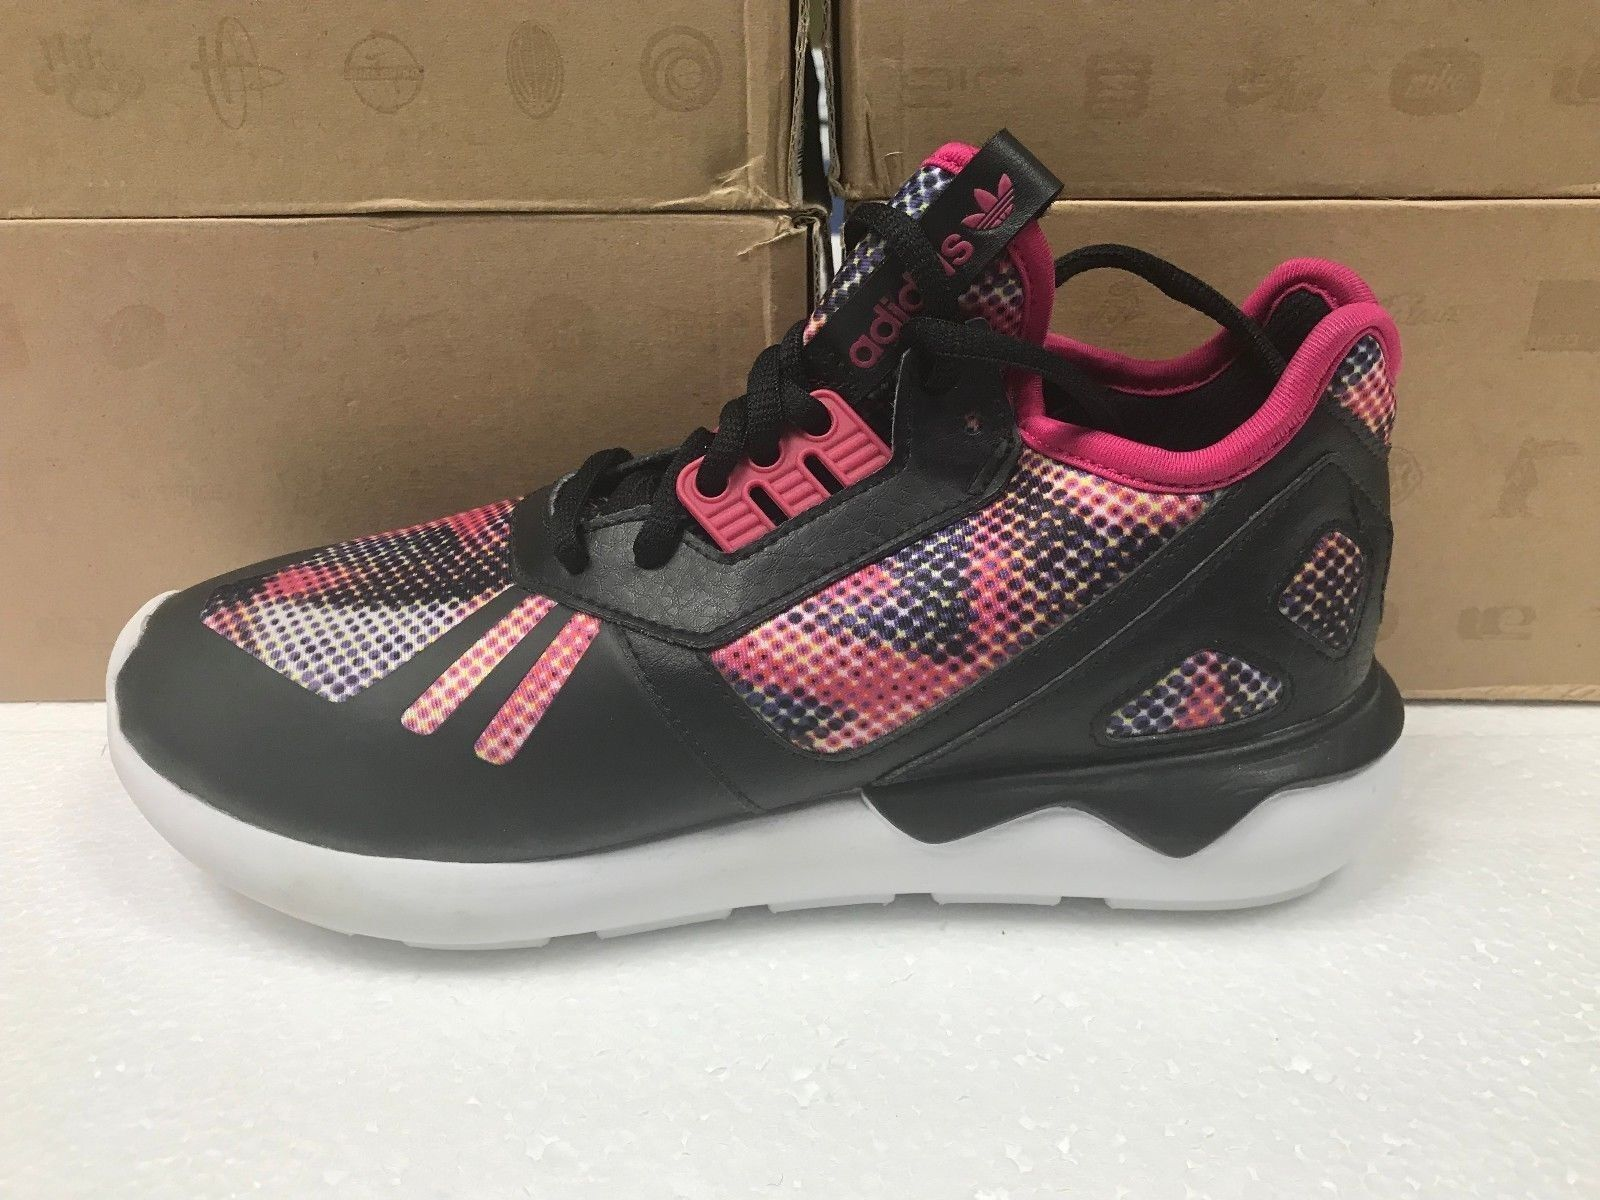 neues womens af5997-shoes-size adidas tubuläre läufer turnschuhe af5997-shoes-size womens 6.5,7.5 fb248a